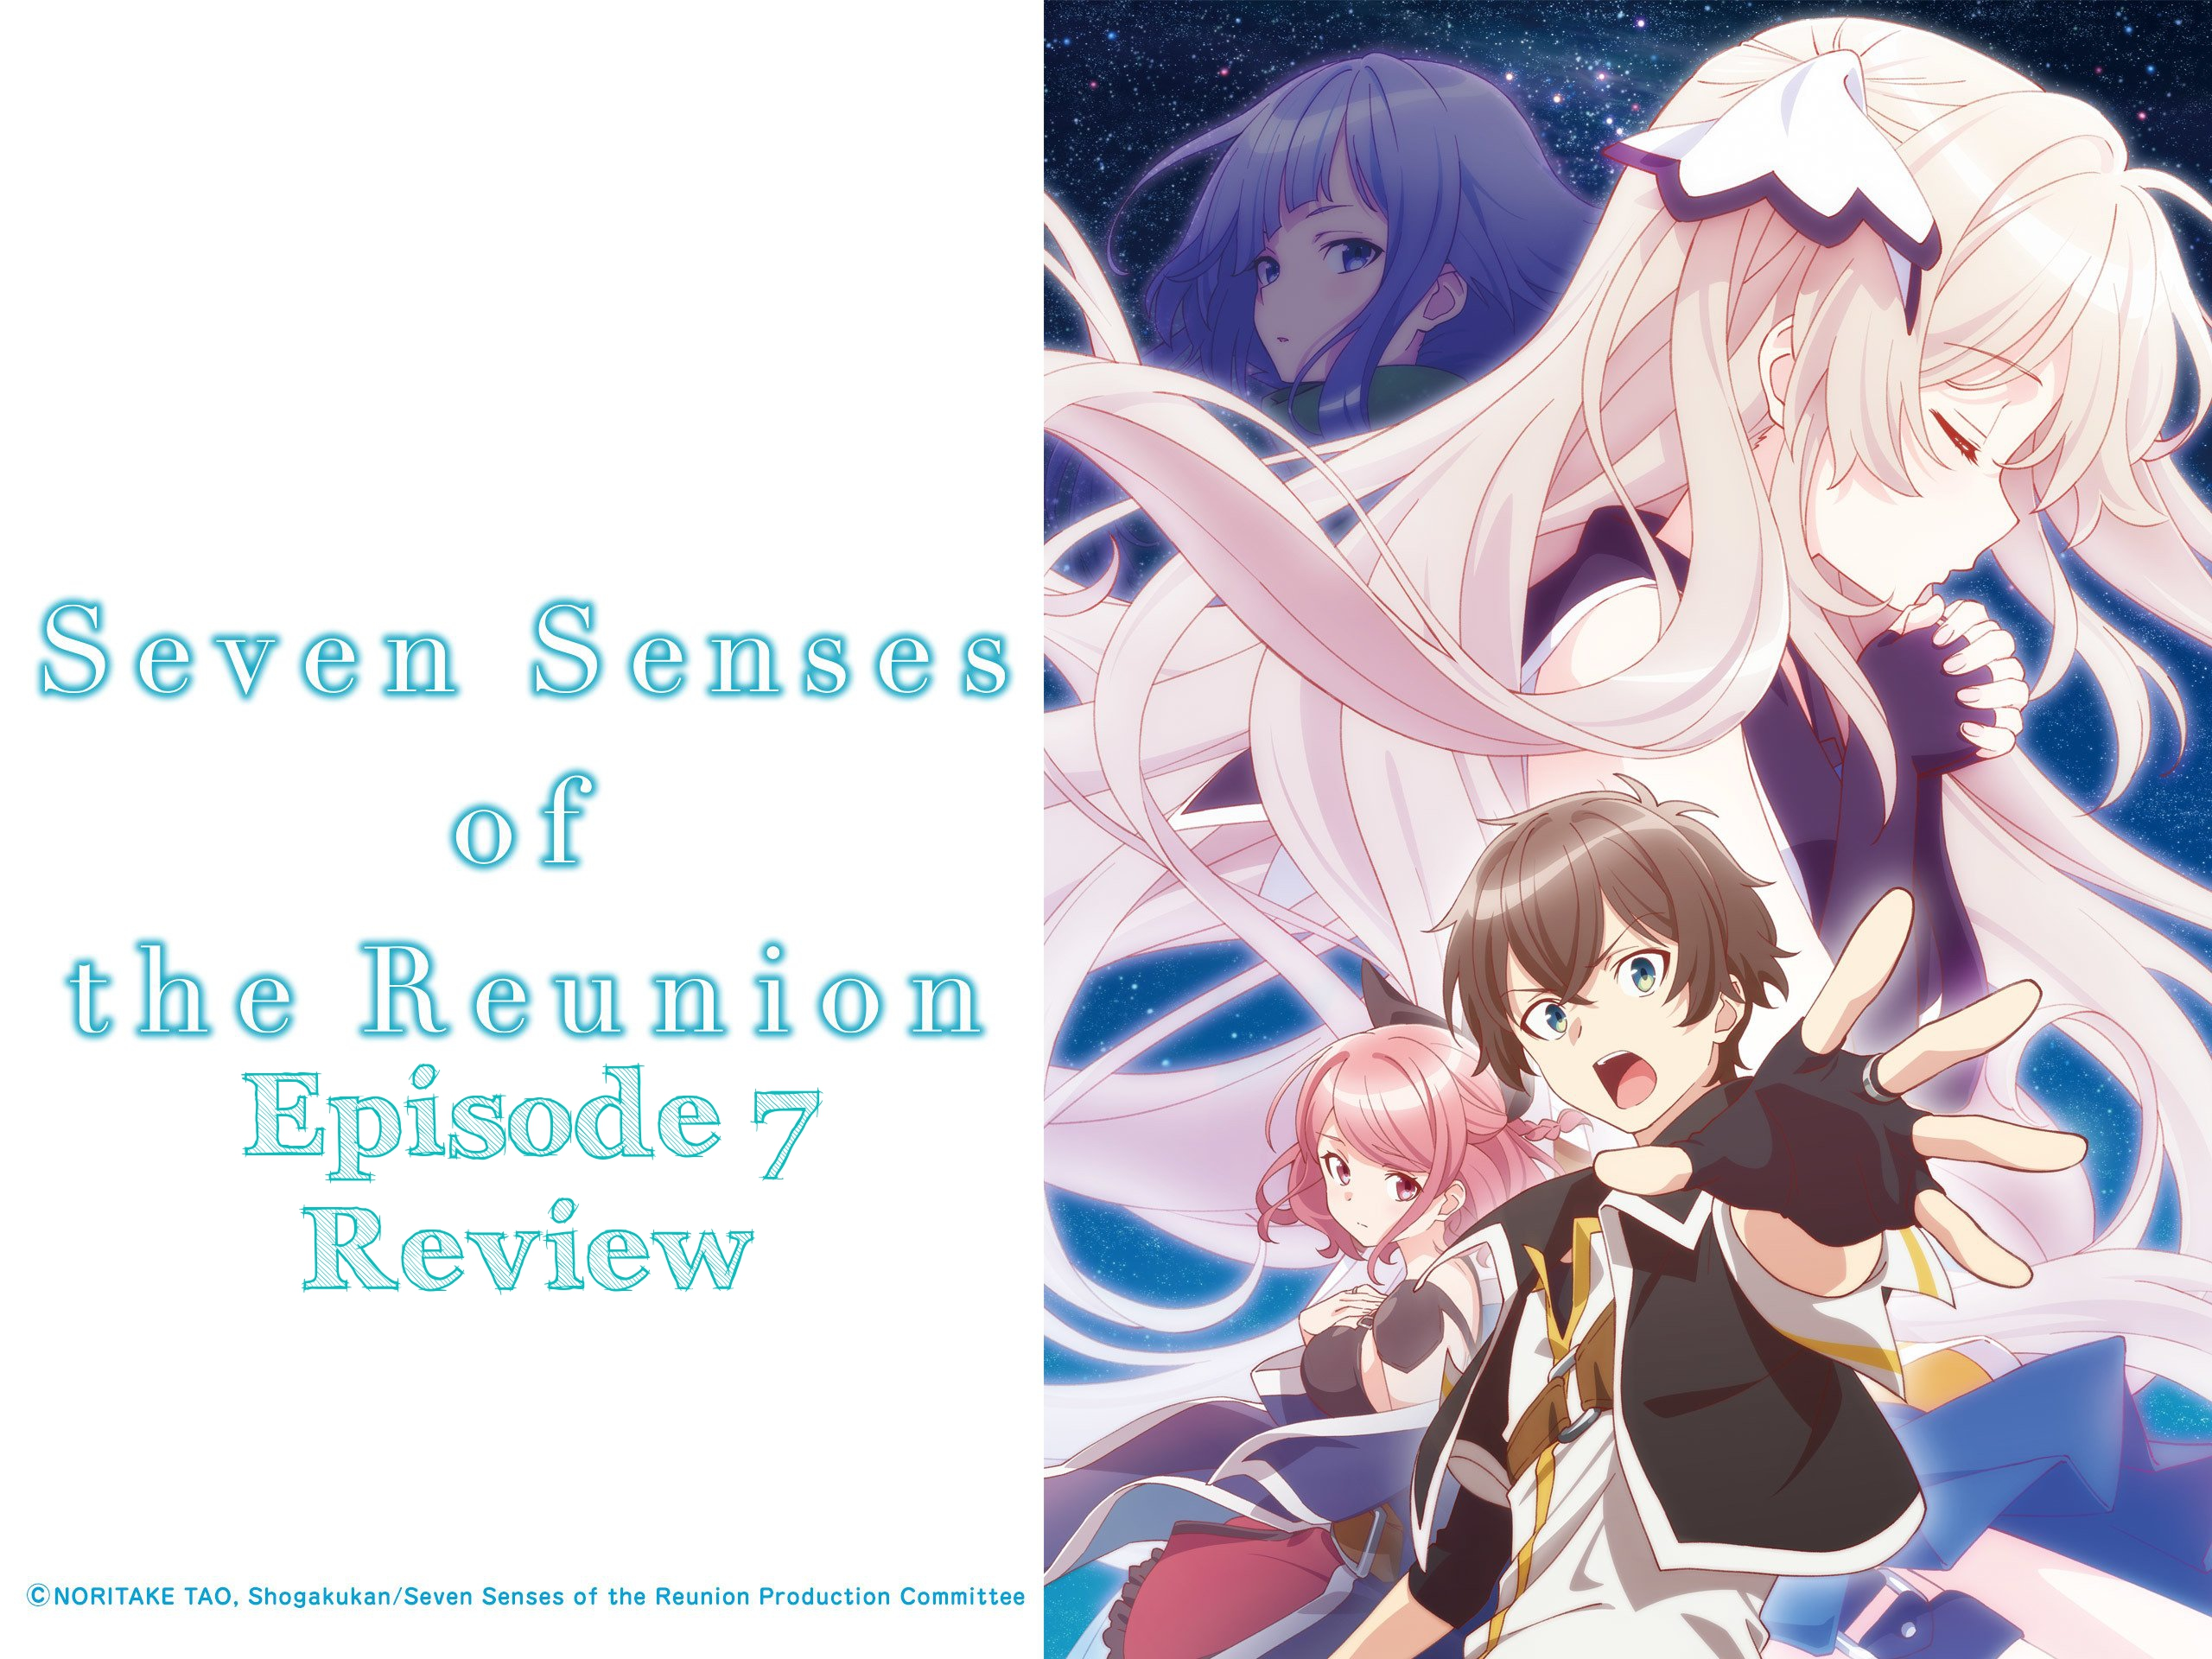 Unjust Desserts – 'Seven Senses of the Re'Union' Episode 7 Review